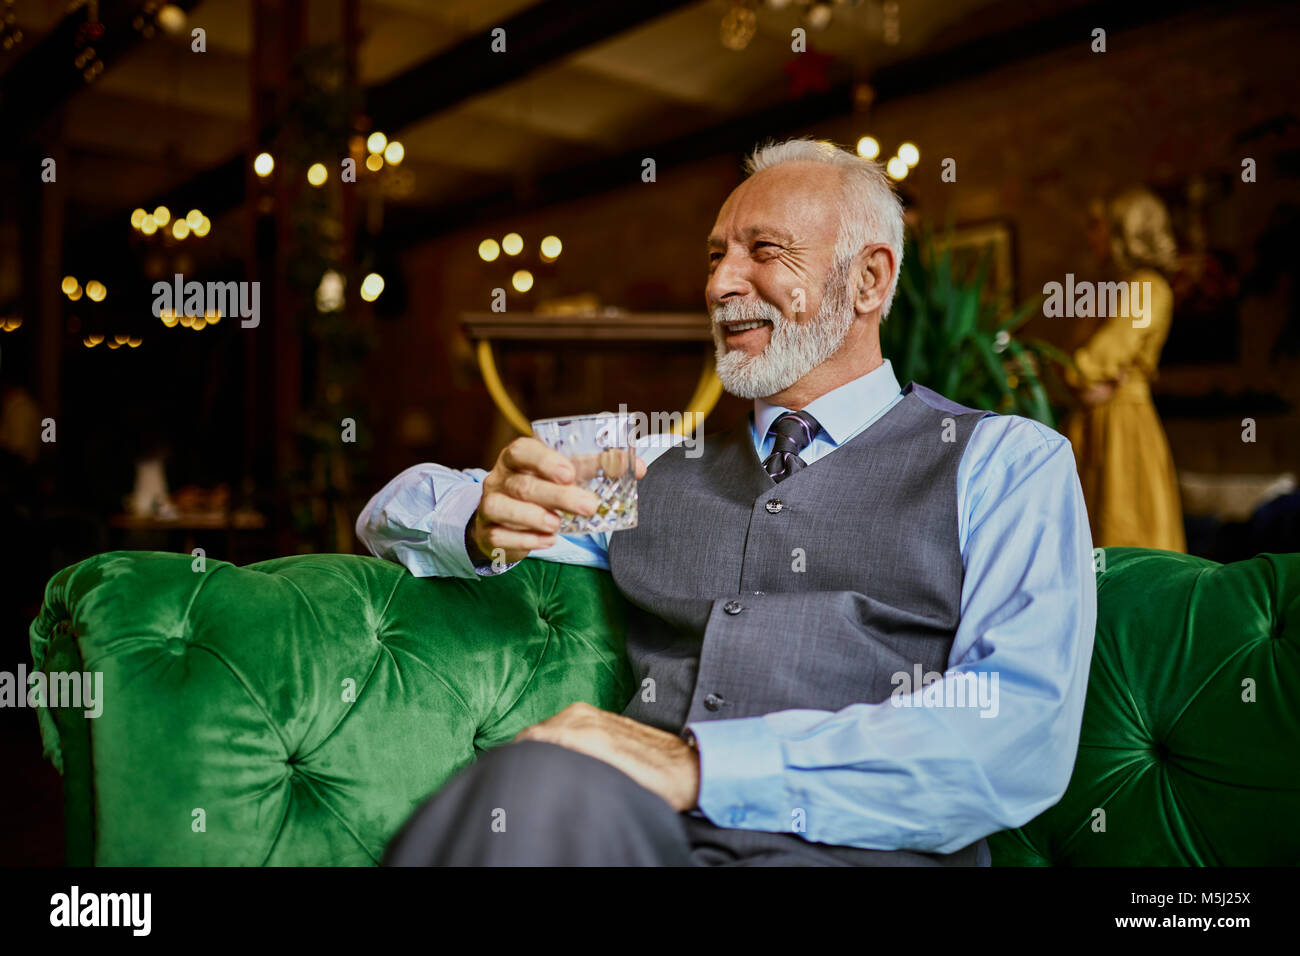 Portrait d'élégante senior man sitting on couch in a bar holding tumbler Photo Stock